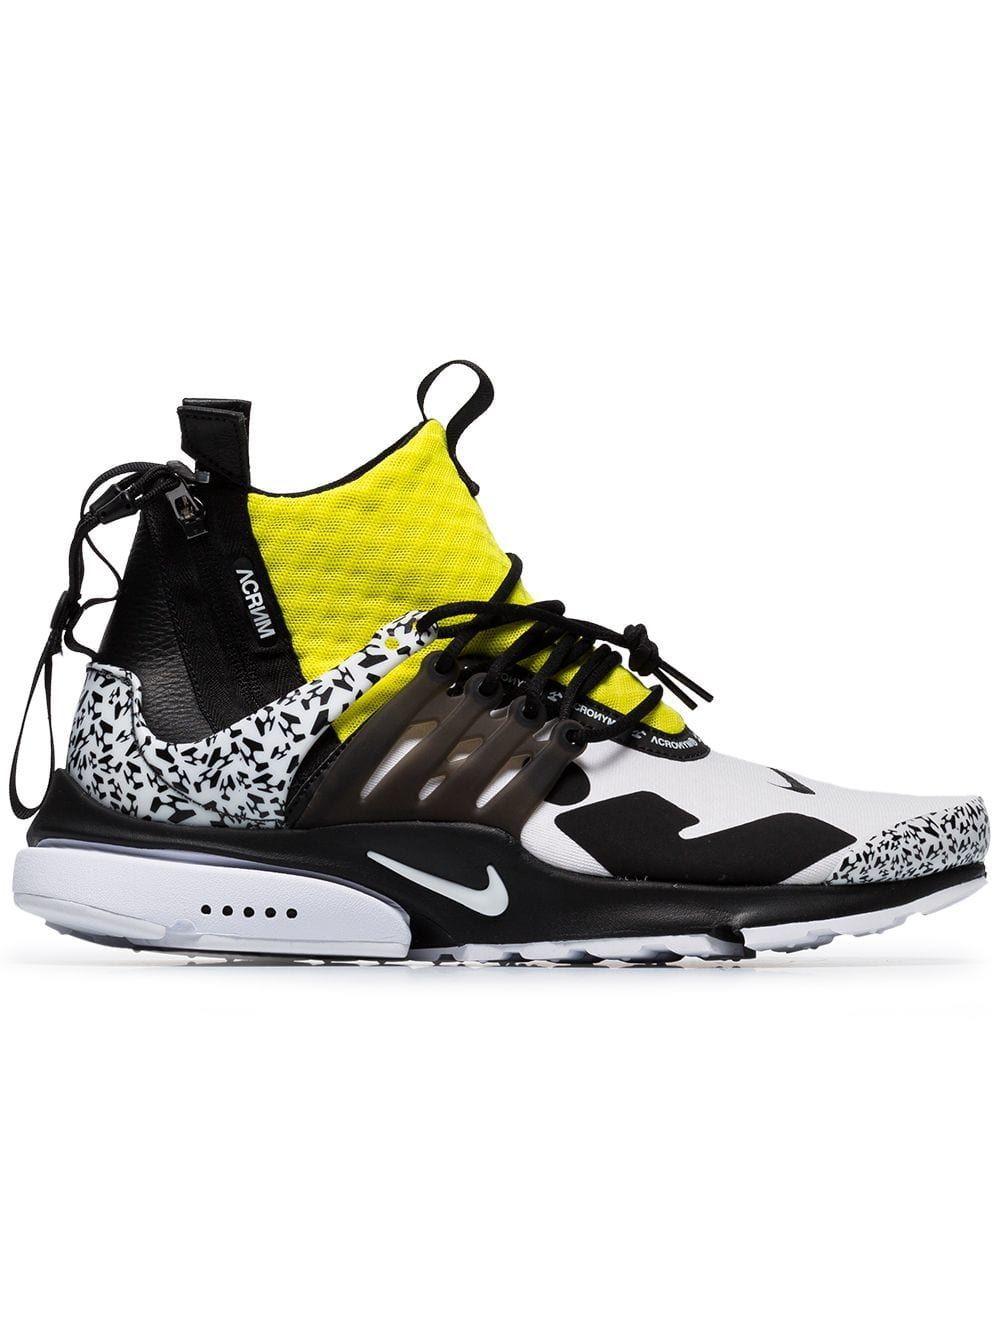 half off a1a56 4a42b NIKE NIKE BLACK WHITE AND YELLOW X ACRONYM PRESTO LEATHER SNEAKERS. nike  shoes